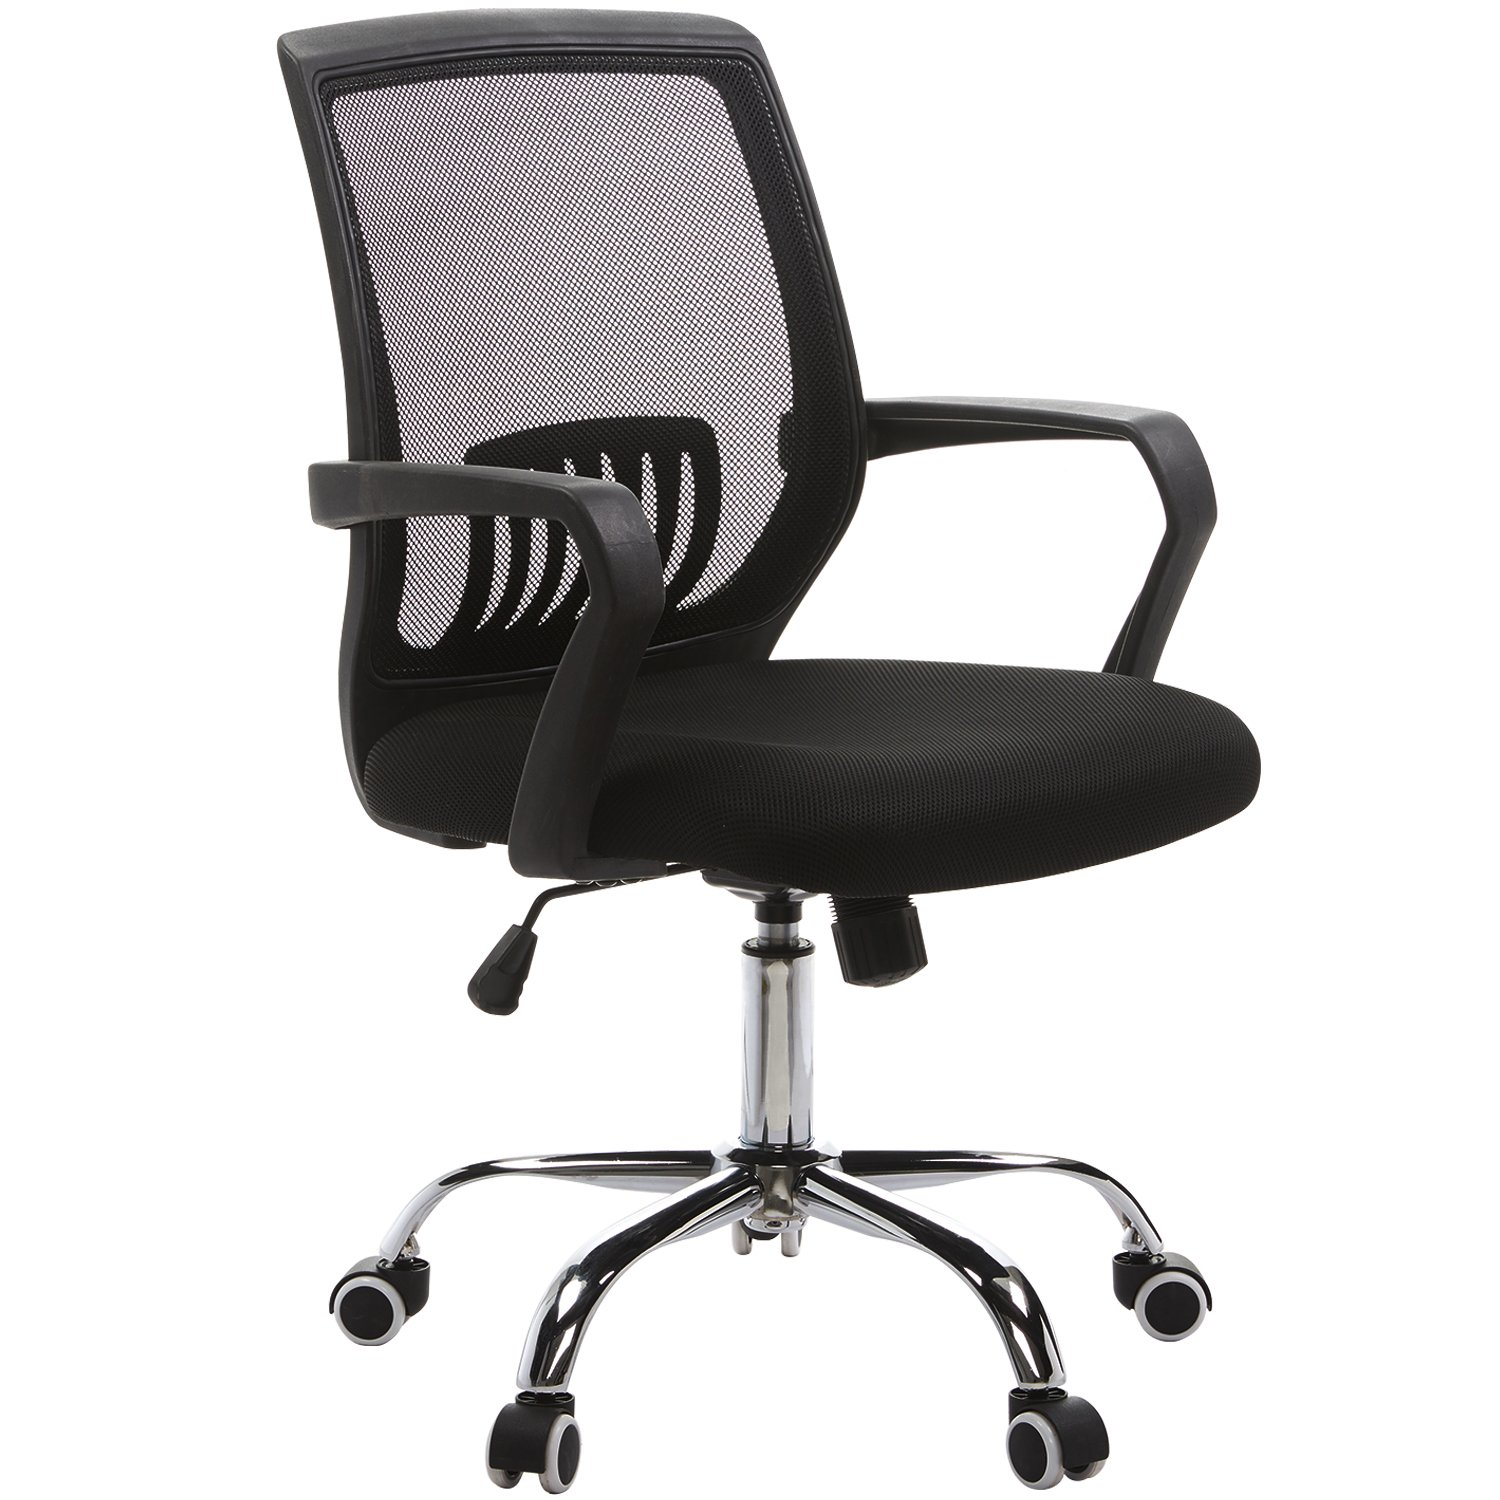 VECELO Adjustable Computer / Office / Task Chair - 360 Degree Swive